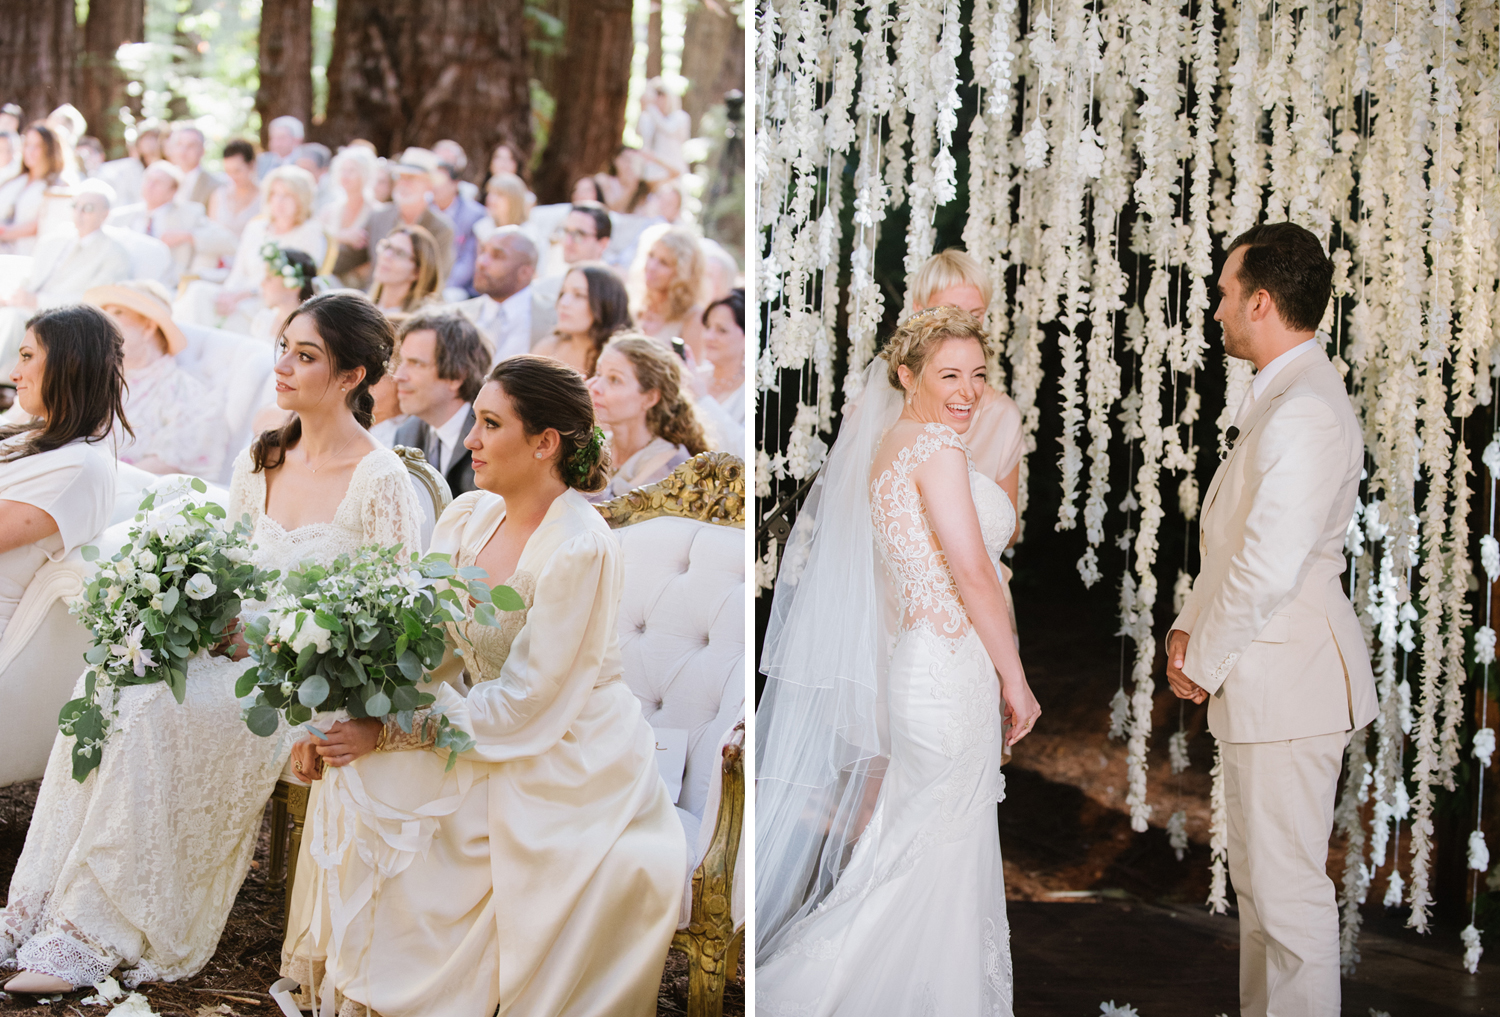 A wedding ceremony among the central coast redwoods at the Santa Lucia Preserve in Carmel, California; Sylvie Gil Photography